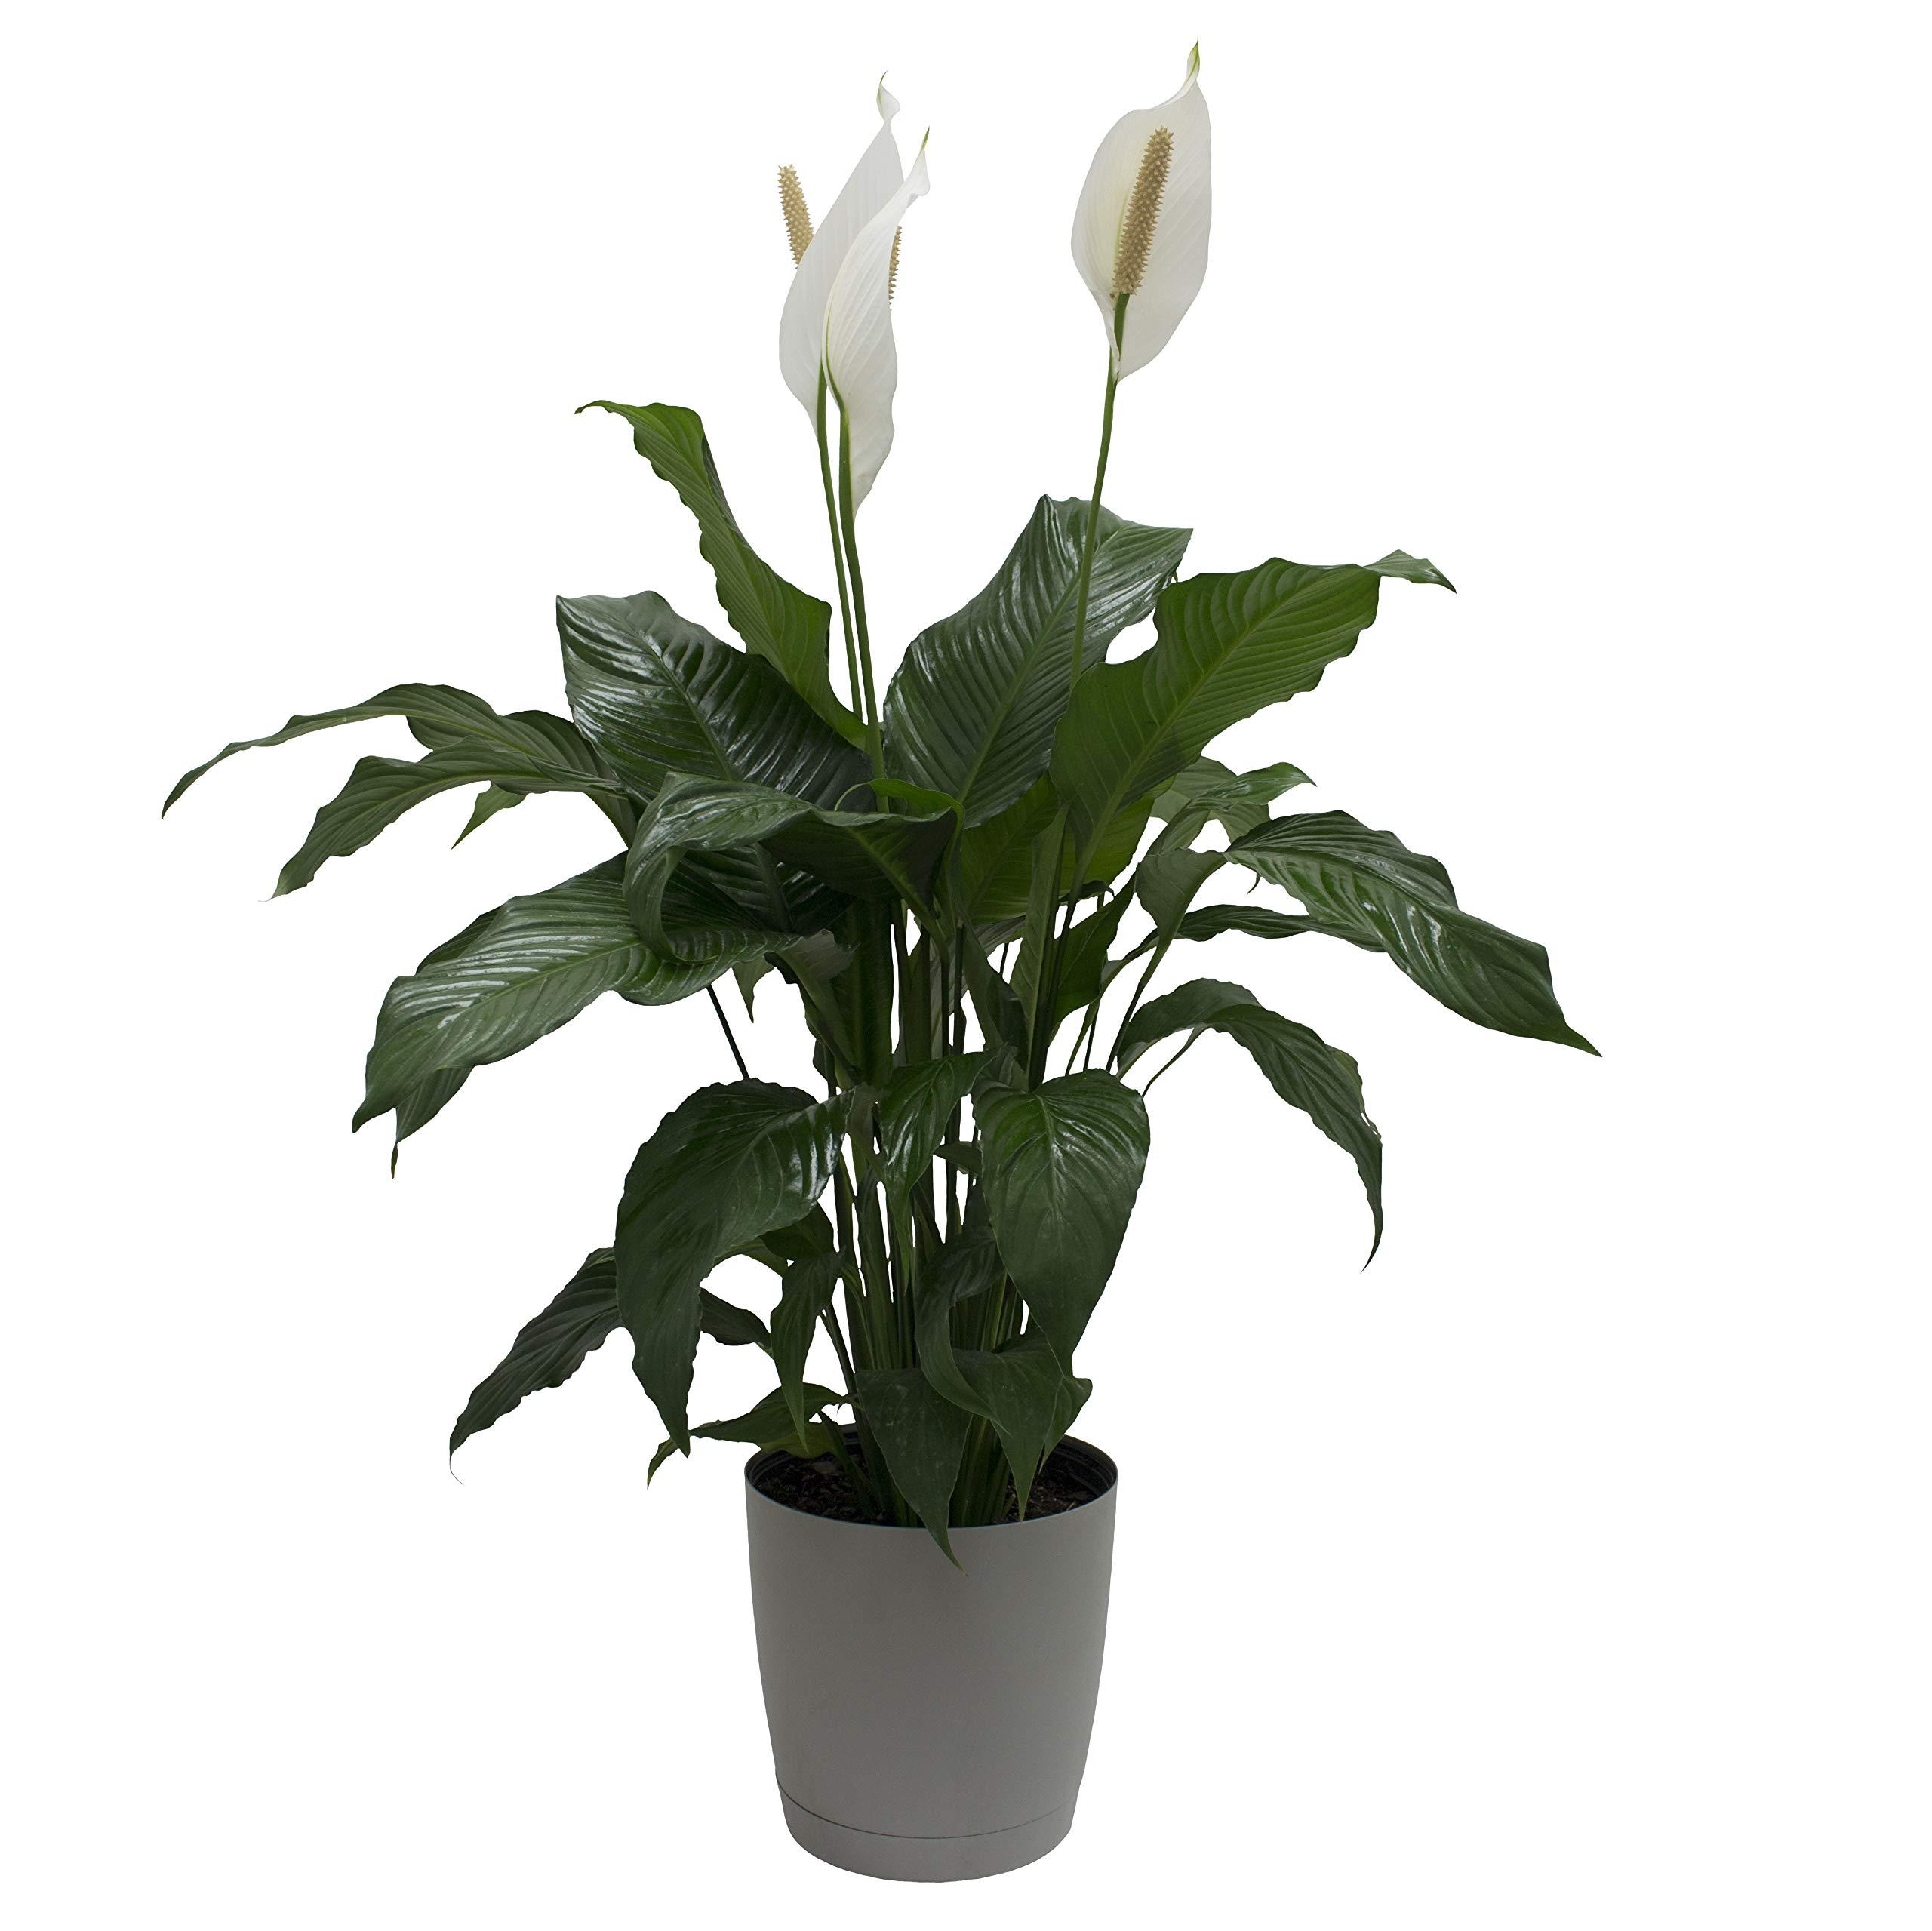 Costa Farms Peace lily, Spathiphyllum, Live Indoor Plant, 3-Feet Tall, Ships in Décor Planter, Fresh From Our Farm, Excellent Gift or Home Décor by Costa Farms (Image #1)